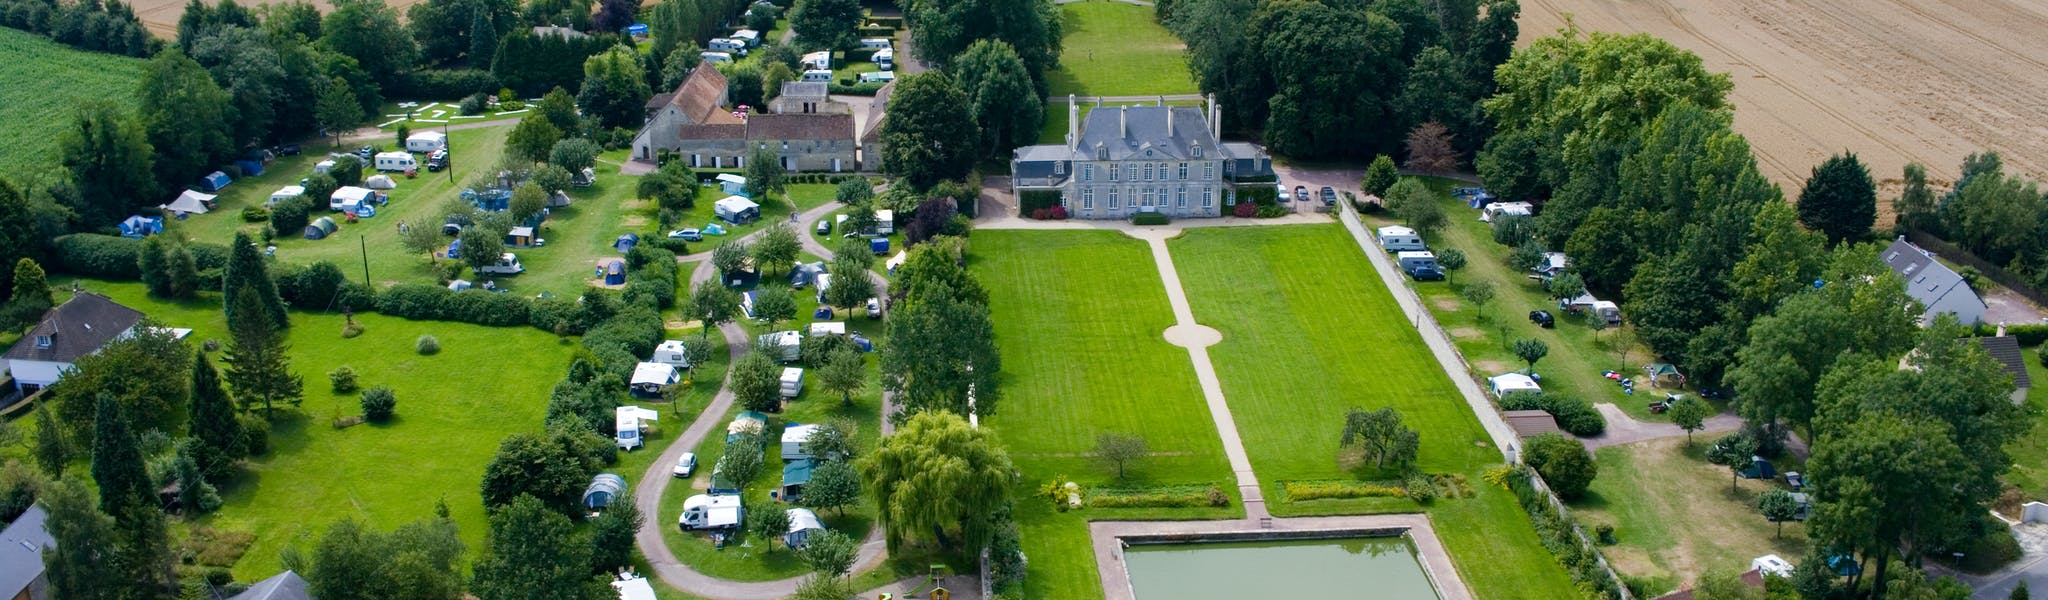 Luchtfoto camping Chateau de Martragny